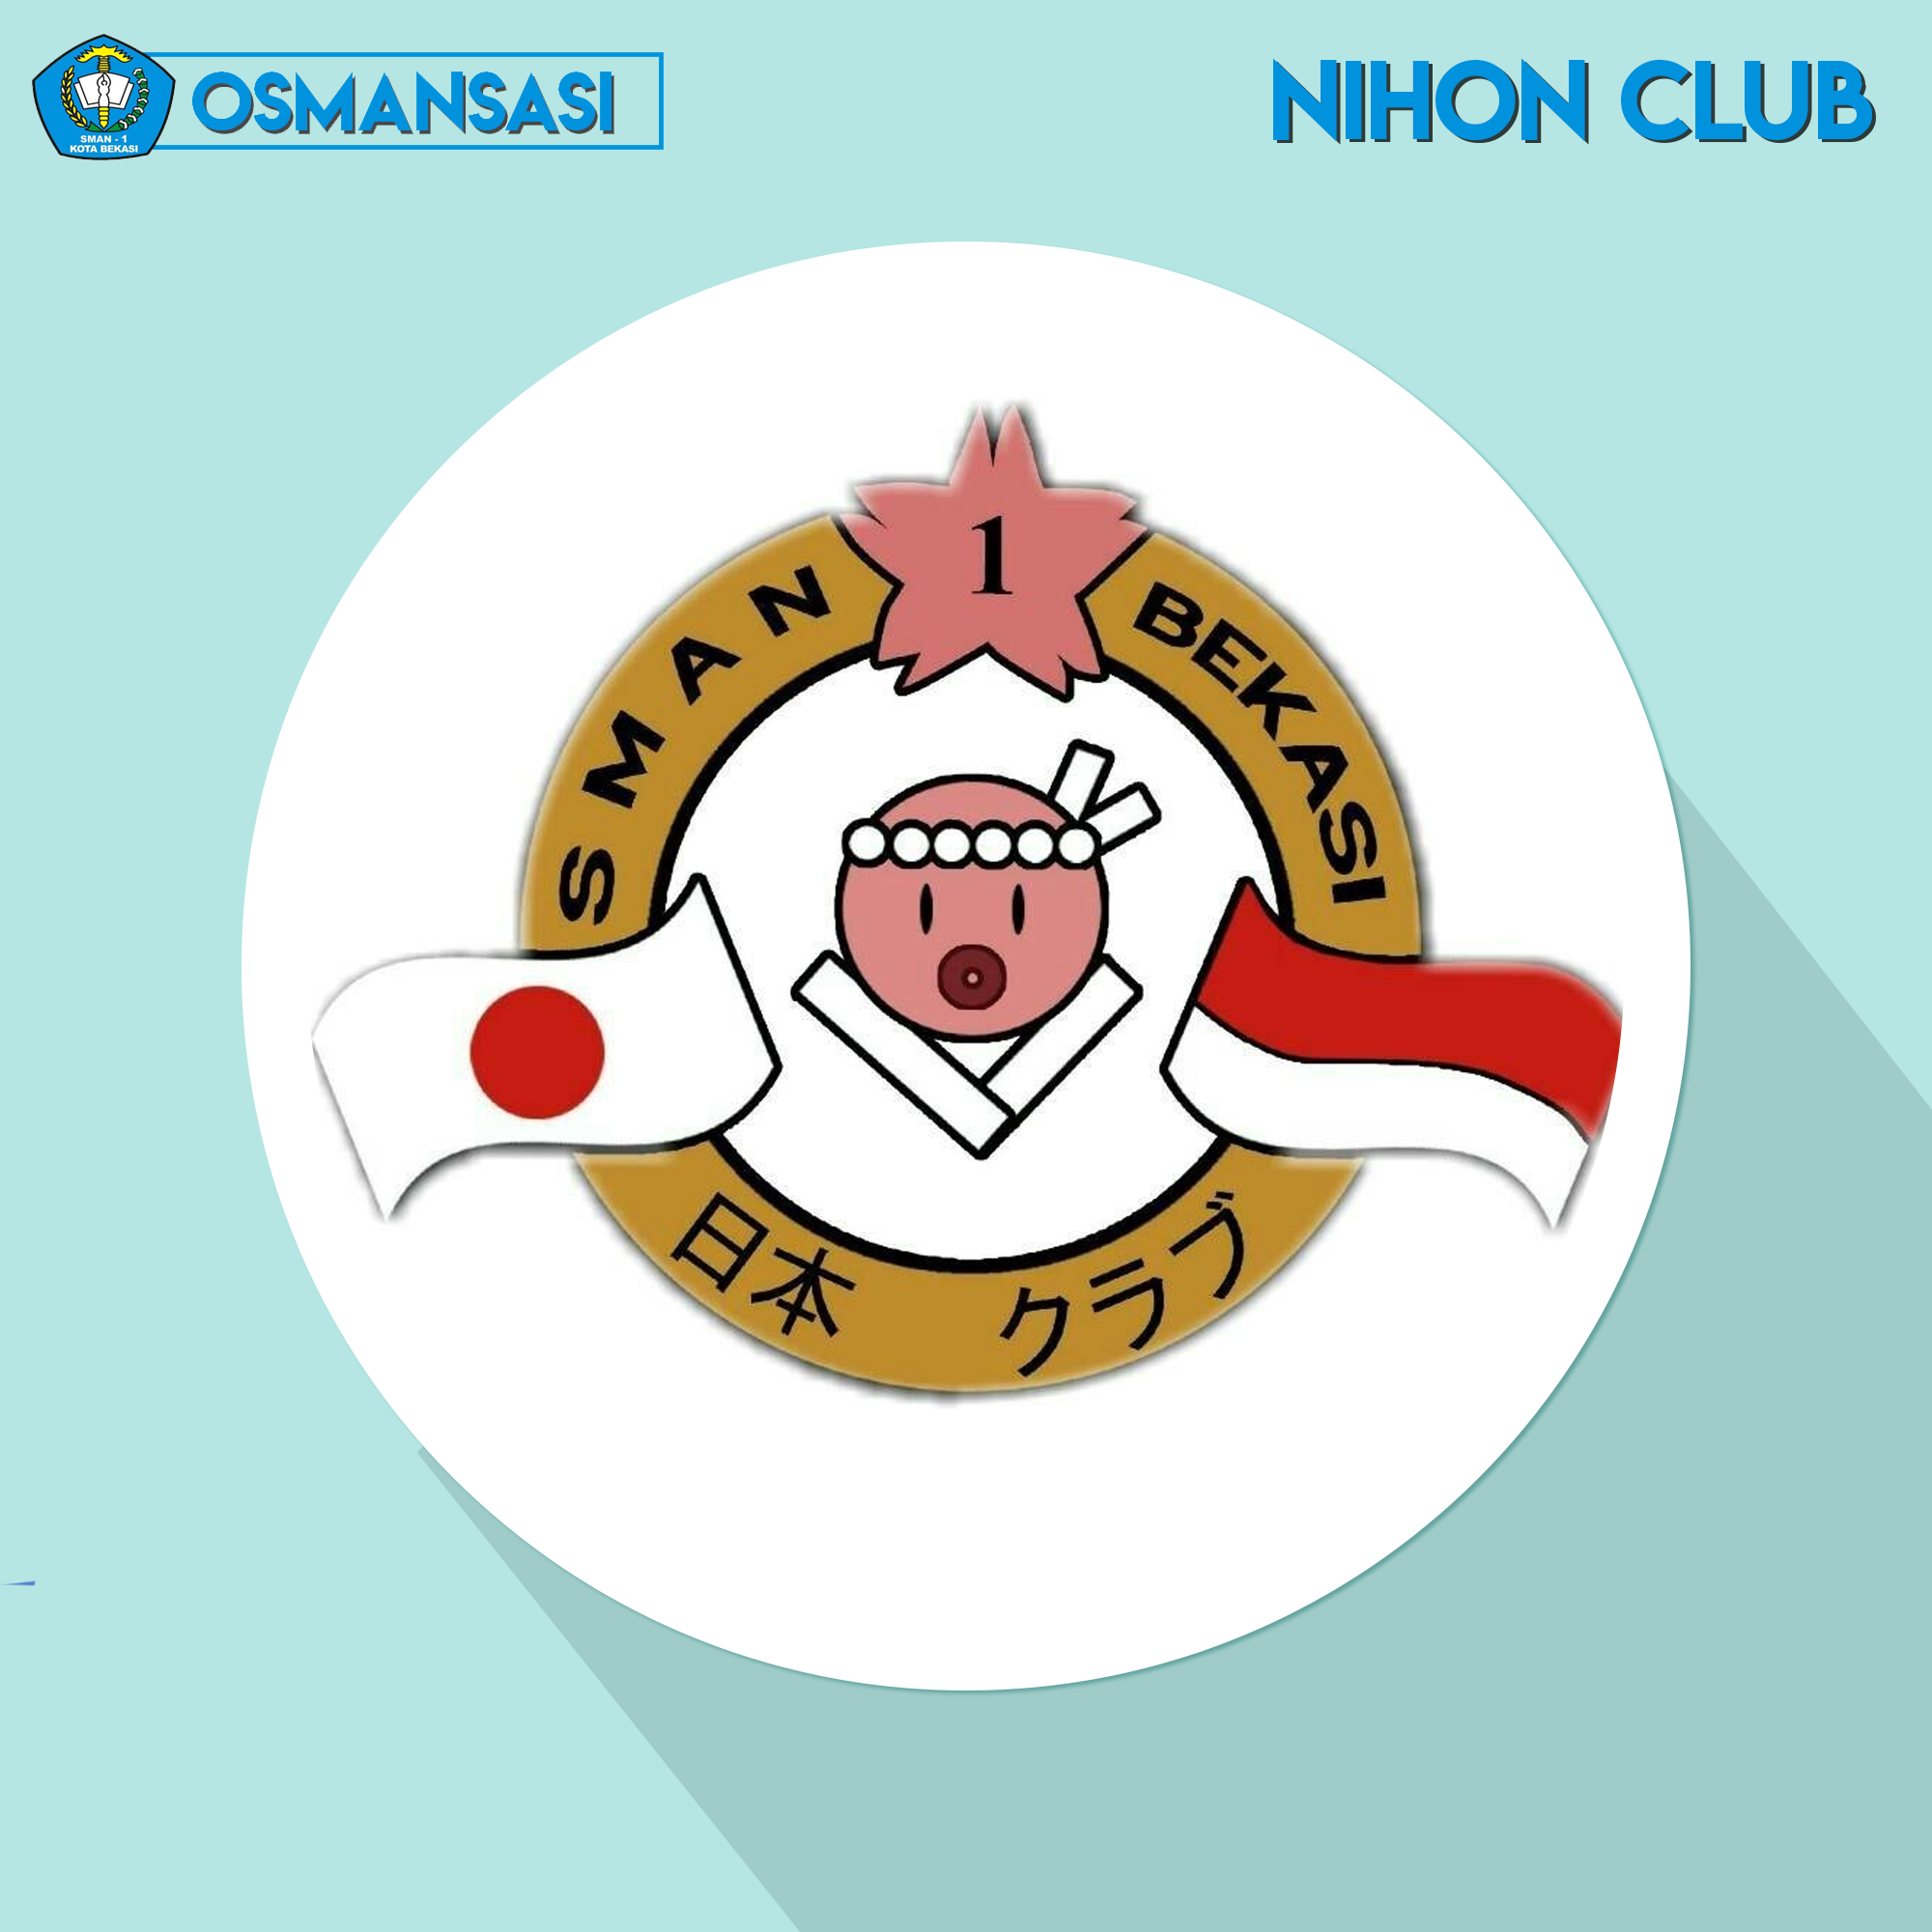 Nihon Club